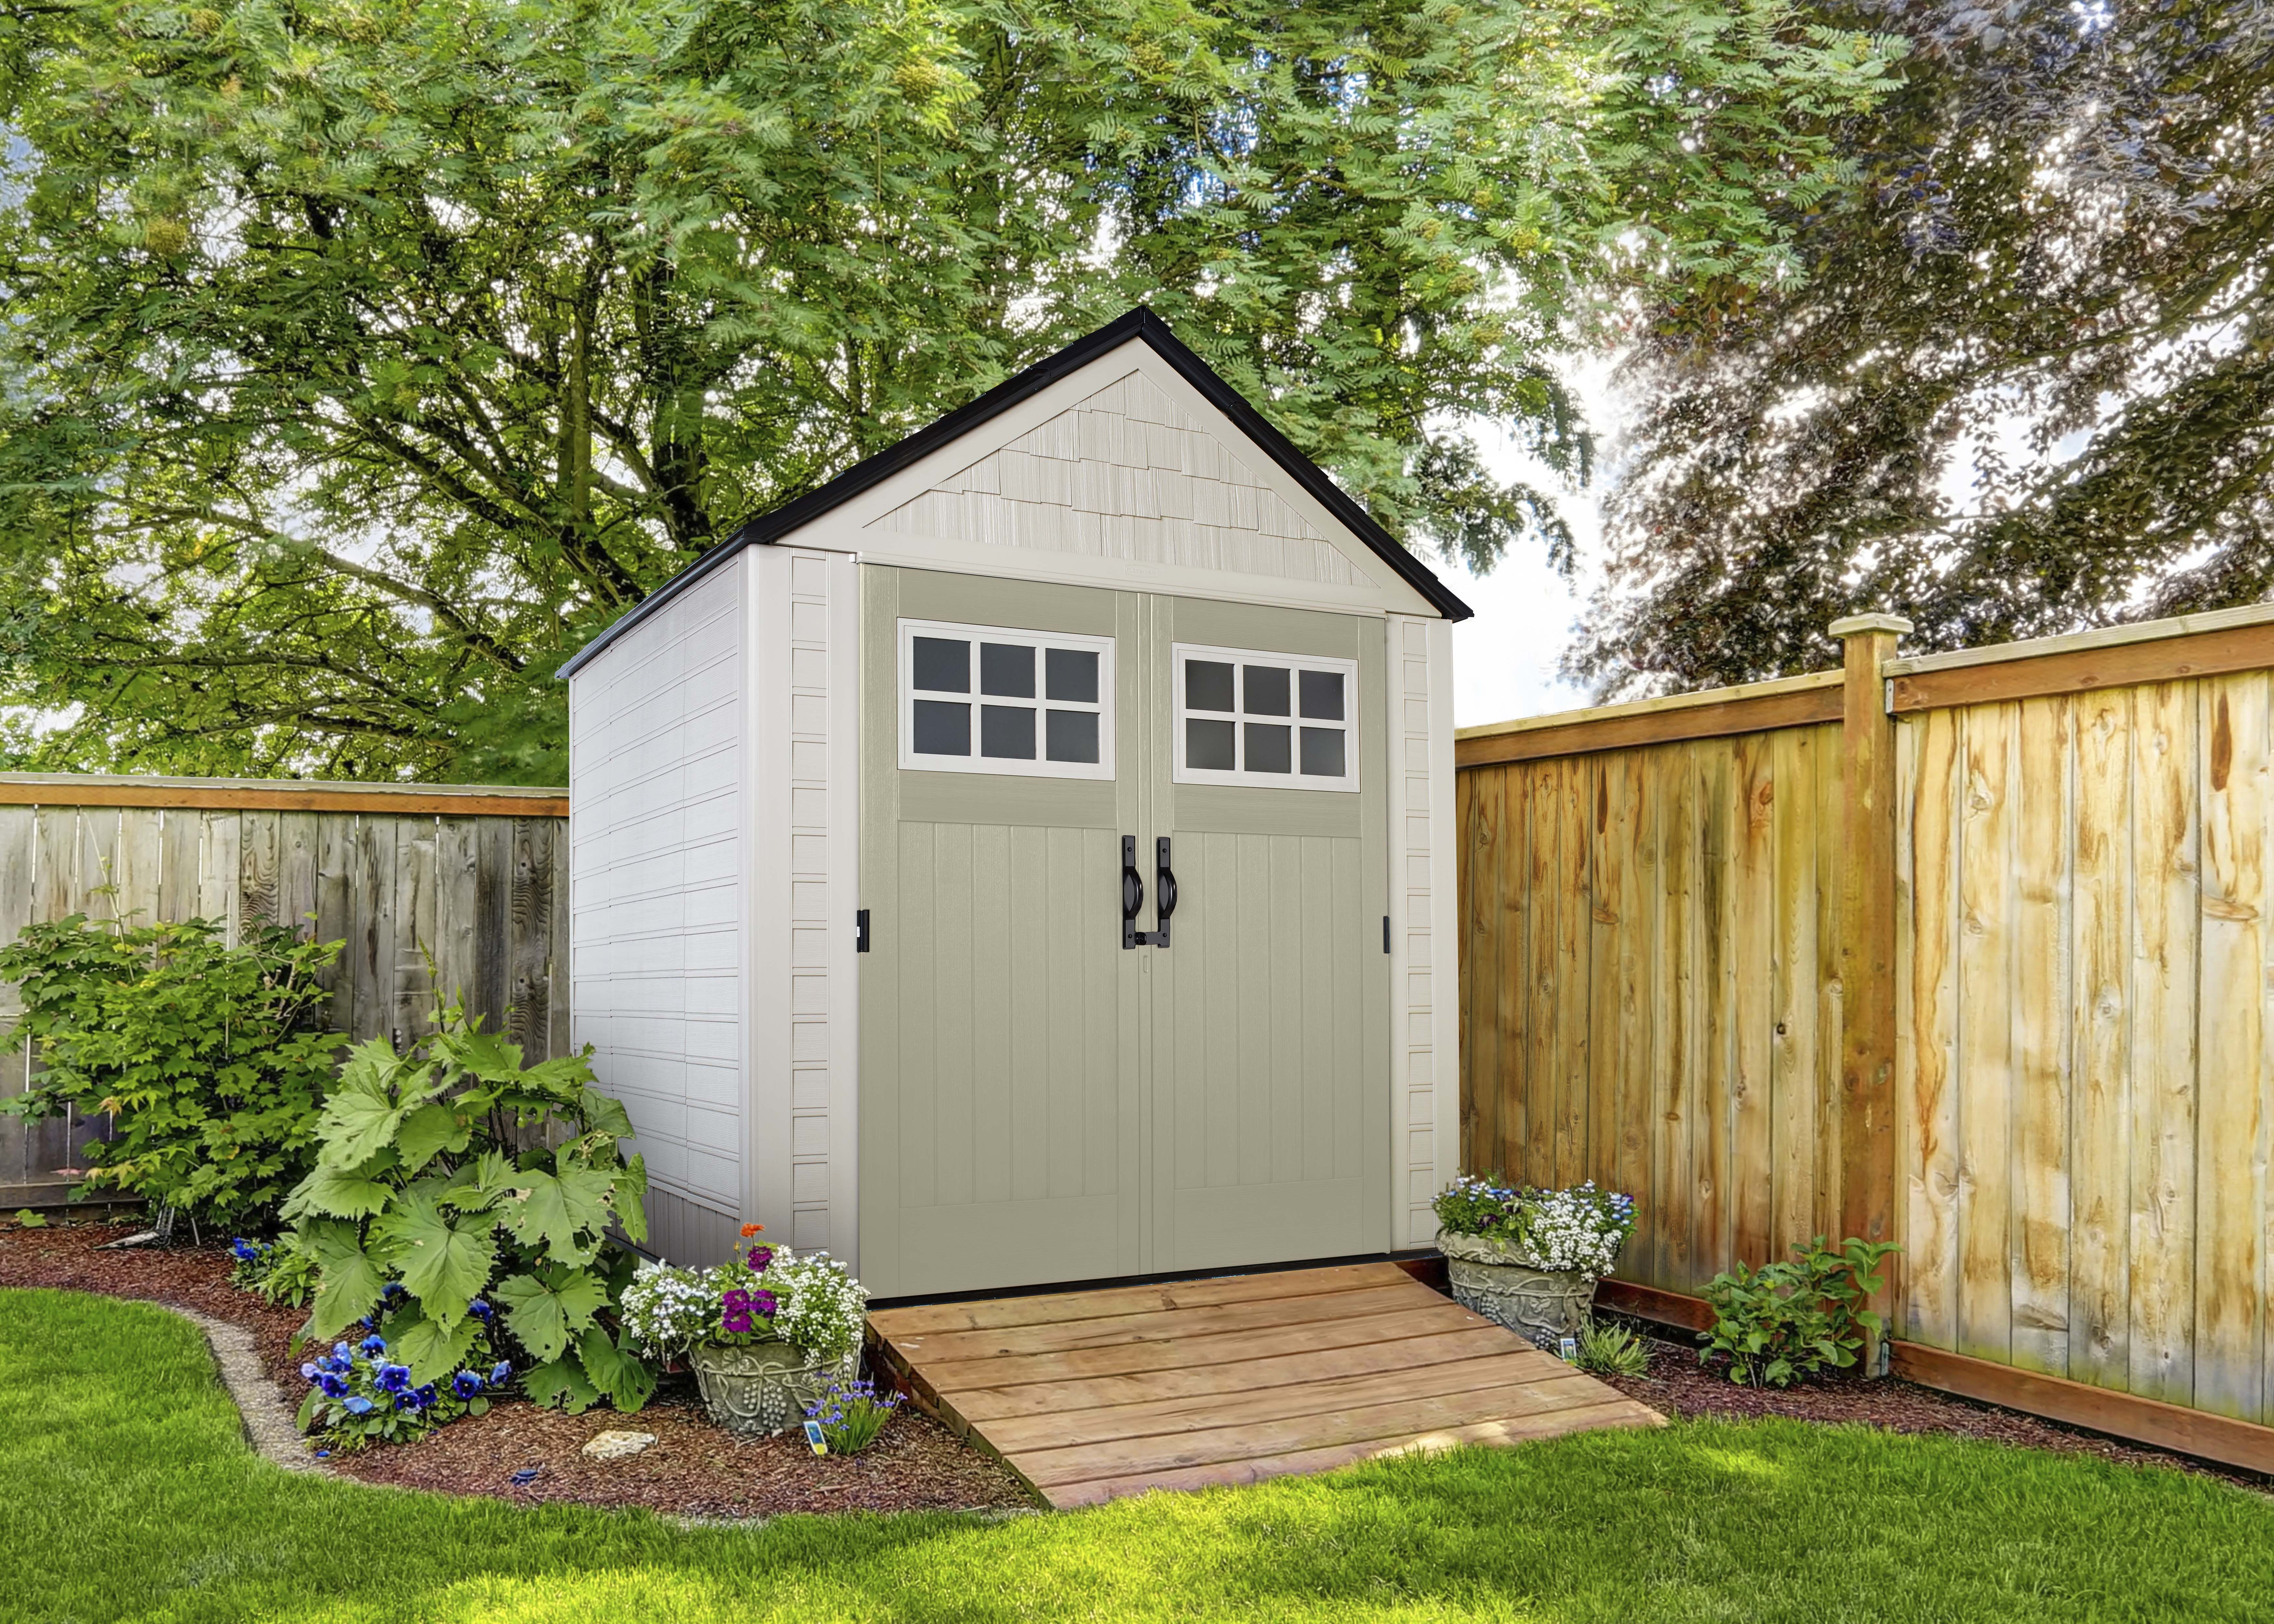 7 X 7 Outdoor Shed Shed Landscaping Outdoor Sheds Backyard Sheds